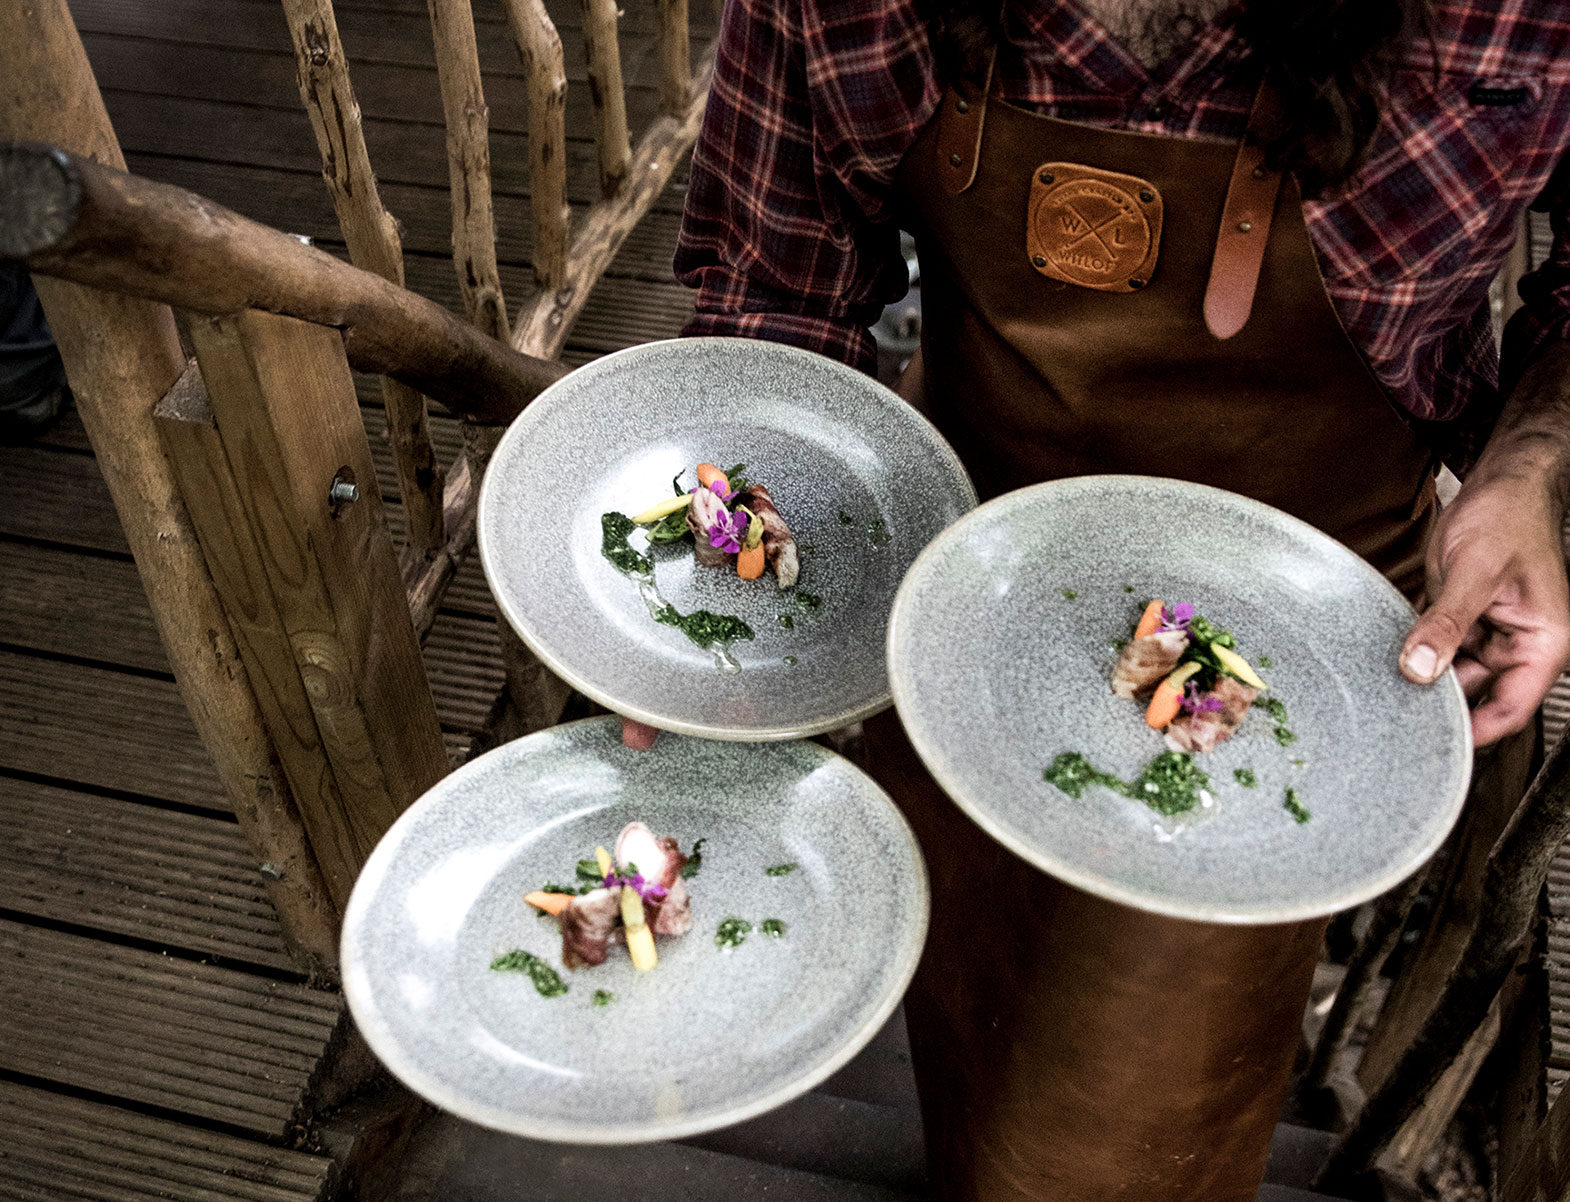 WITLOFT The Treehouse Story plates being served